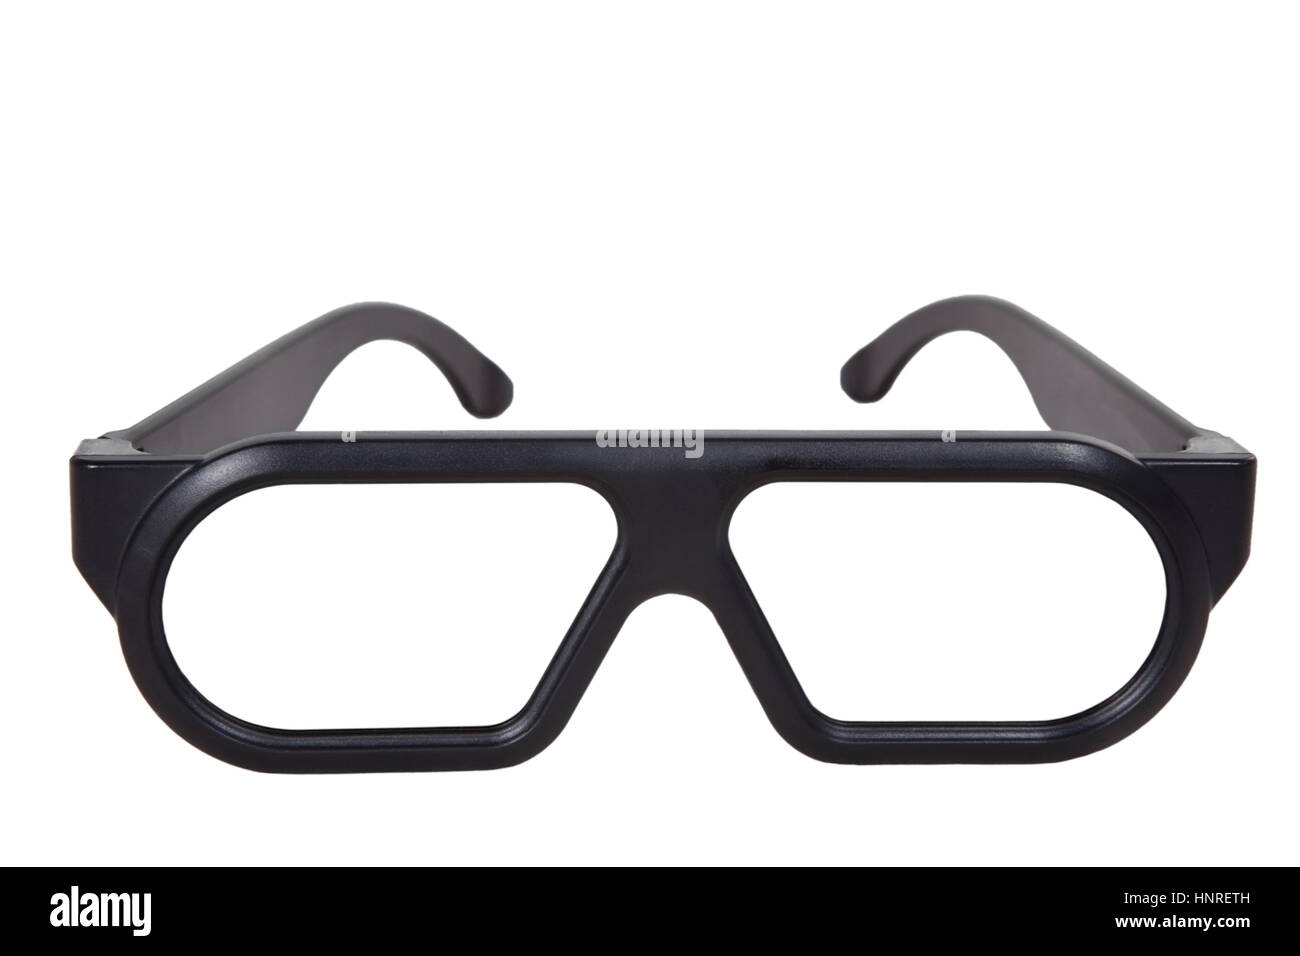 Isolated plastic black 3-D theater glasses. - Stock Image